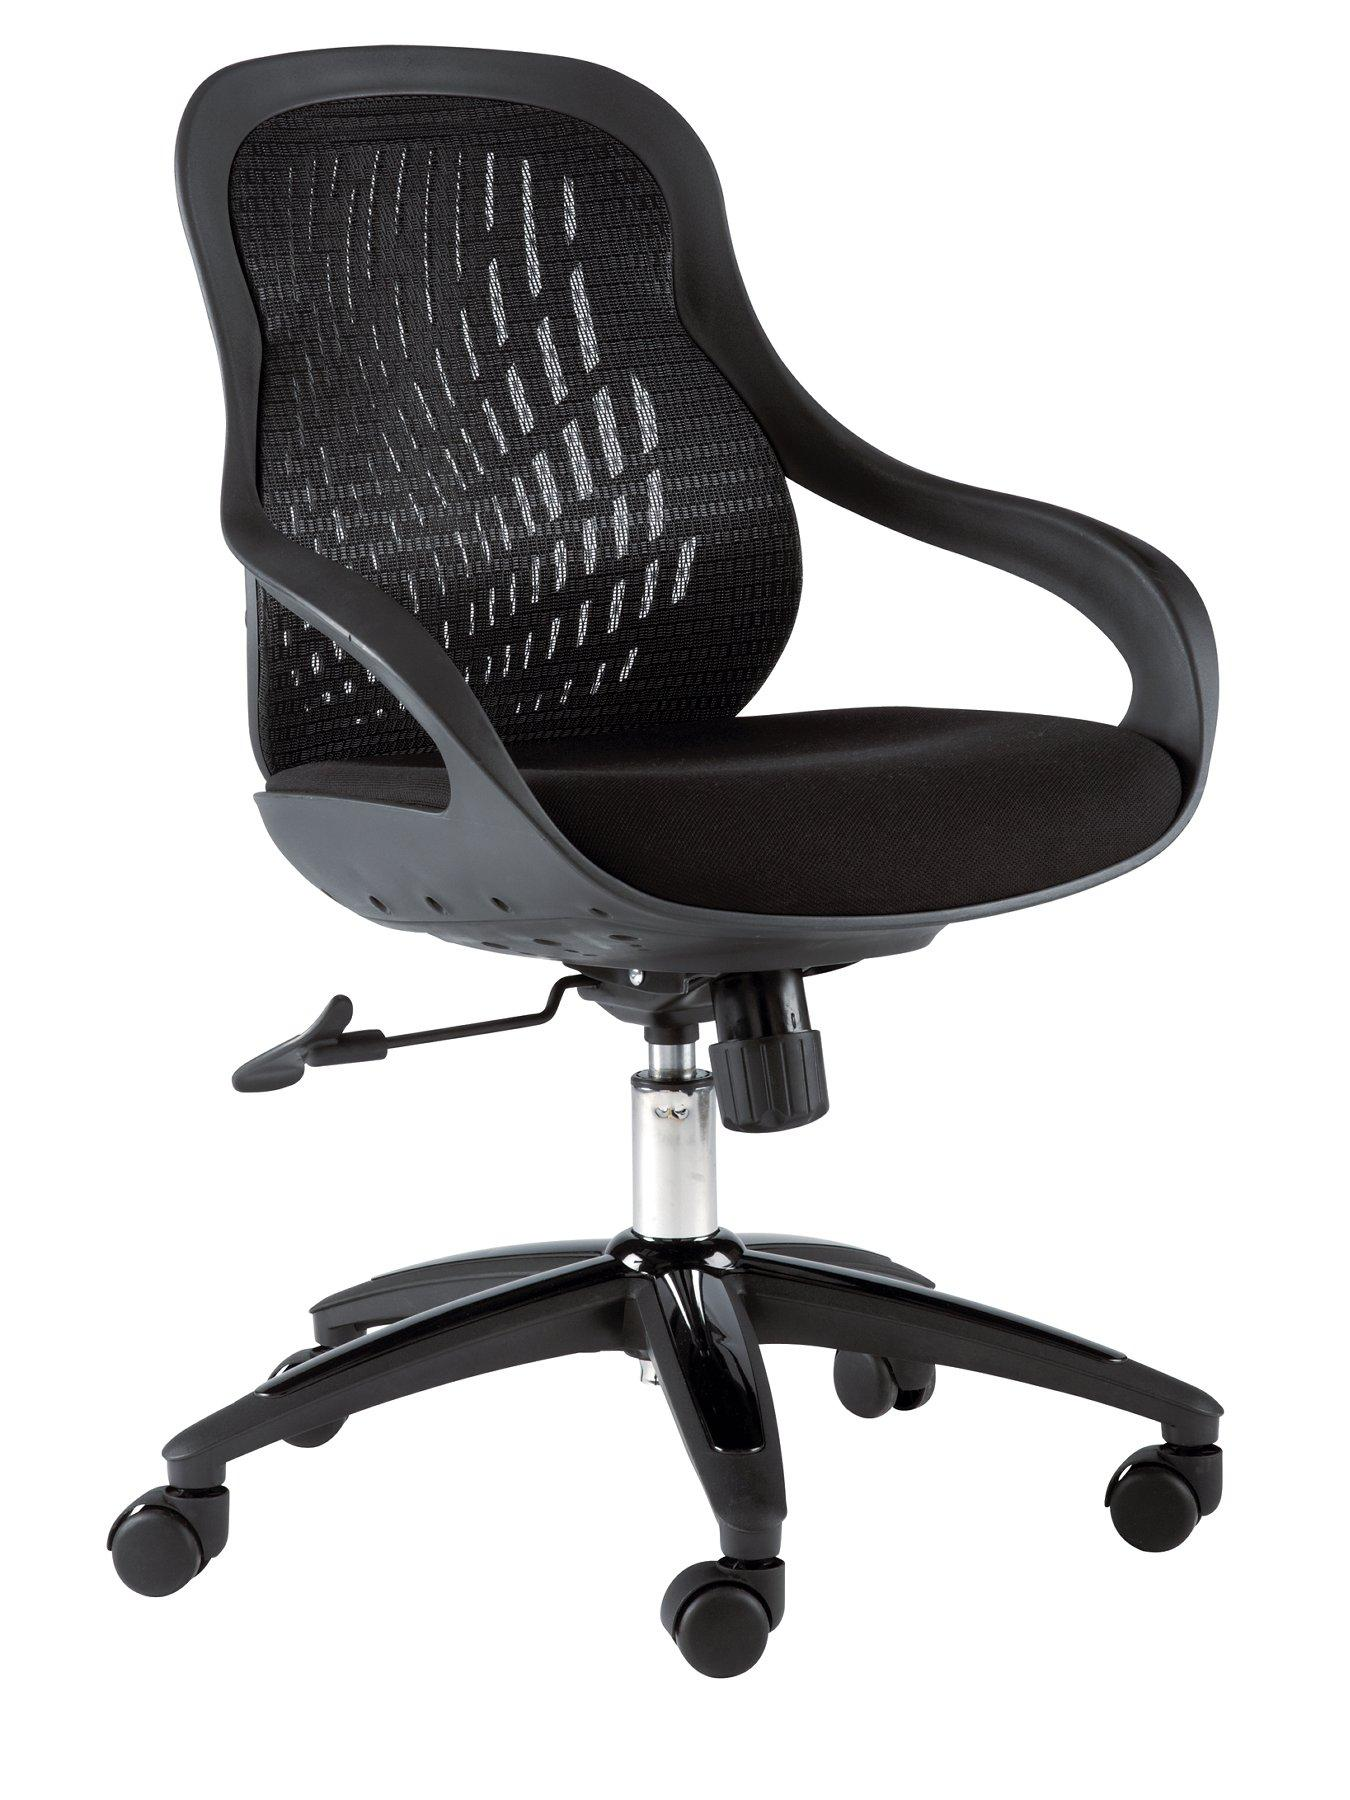 Croft Office Chair - Red, Red,Black